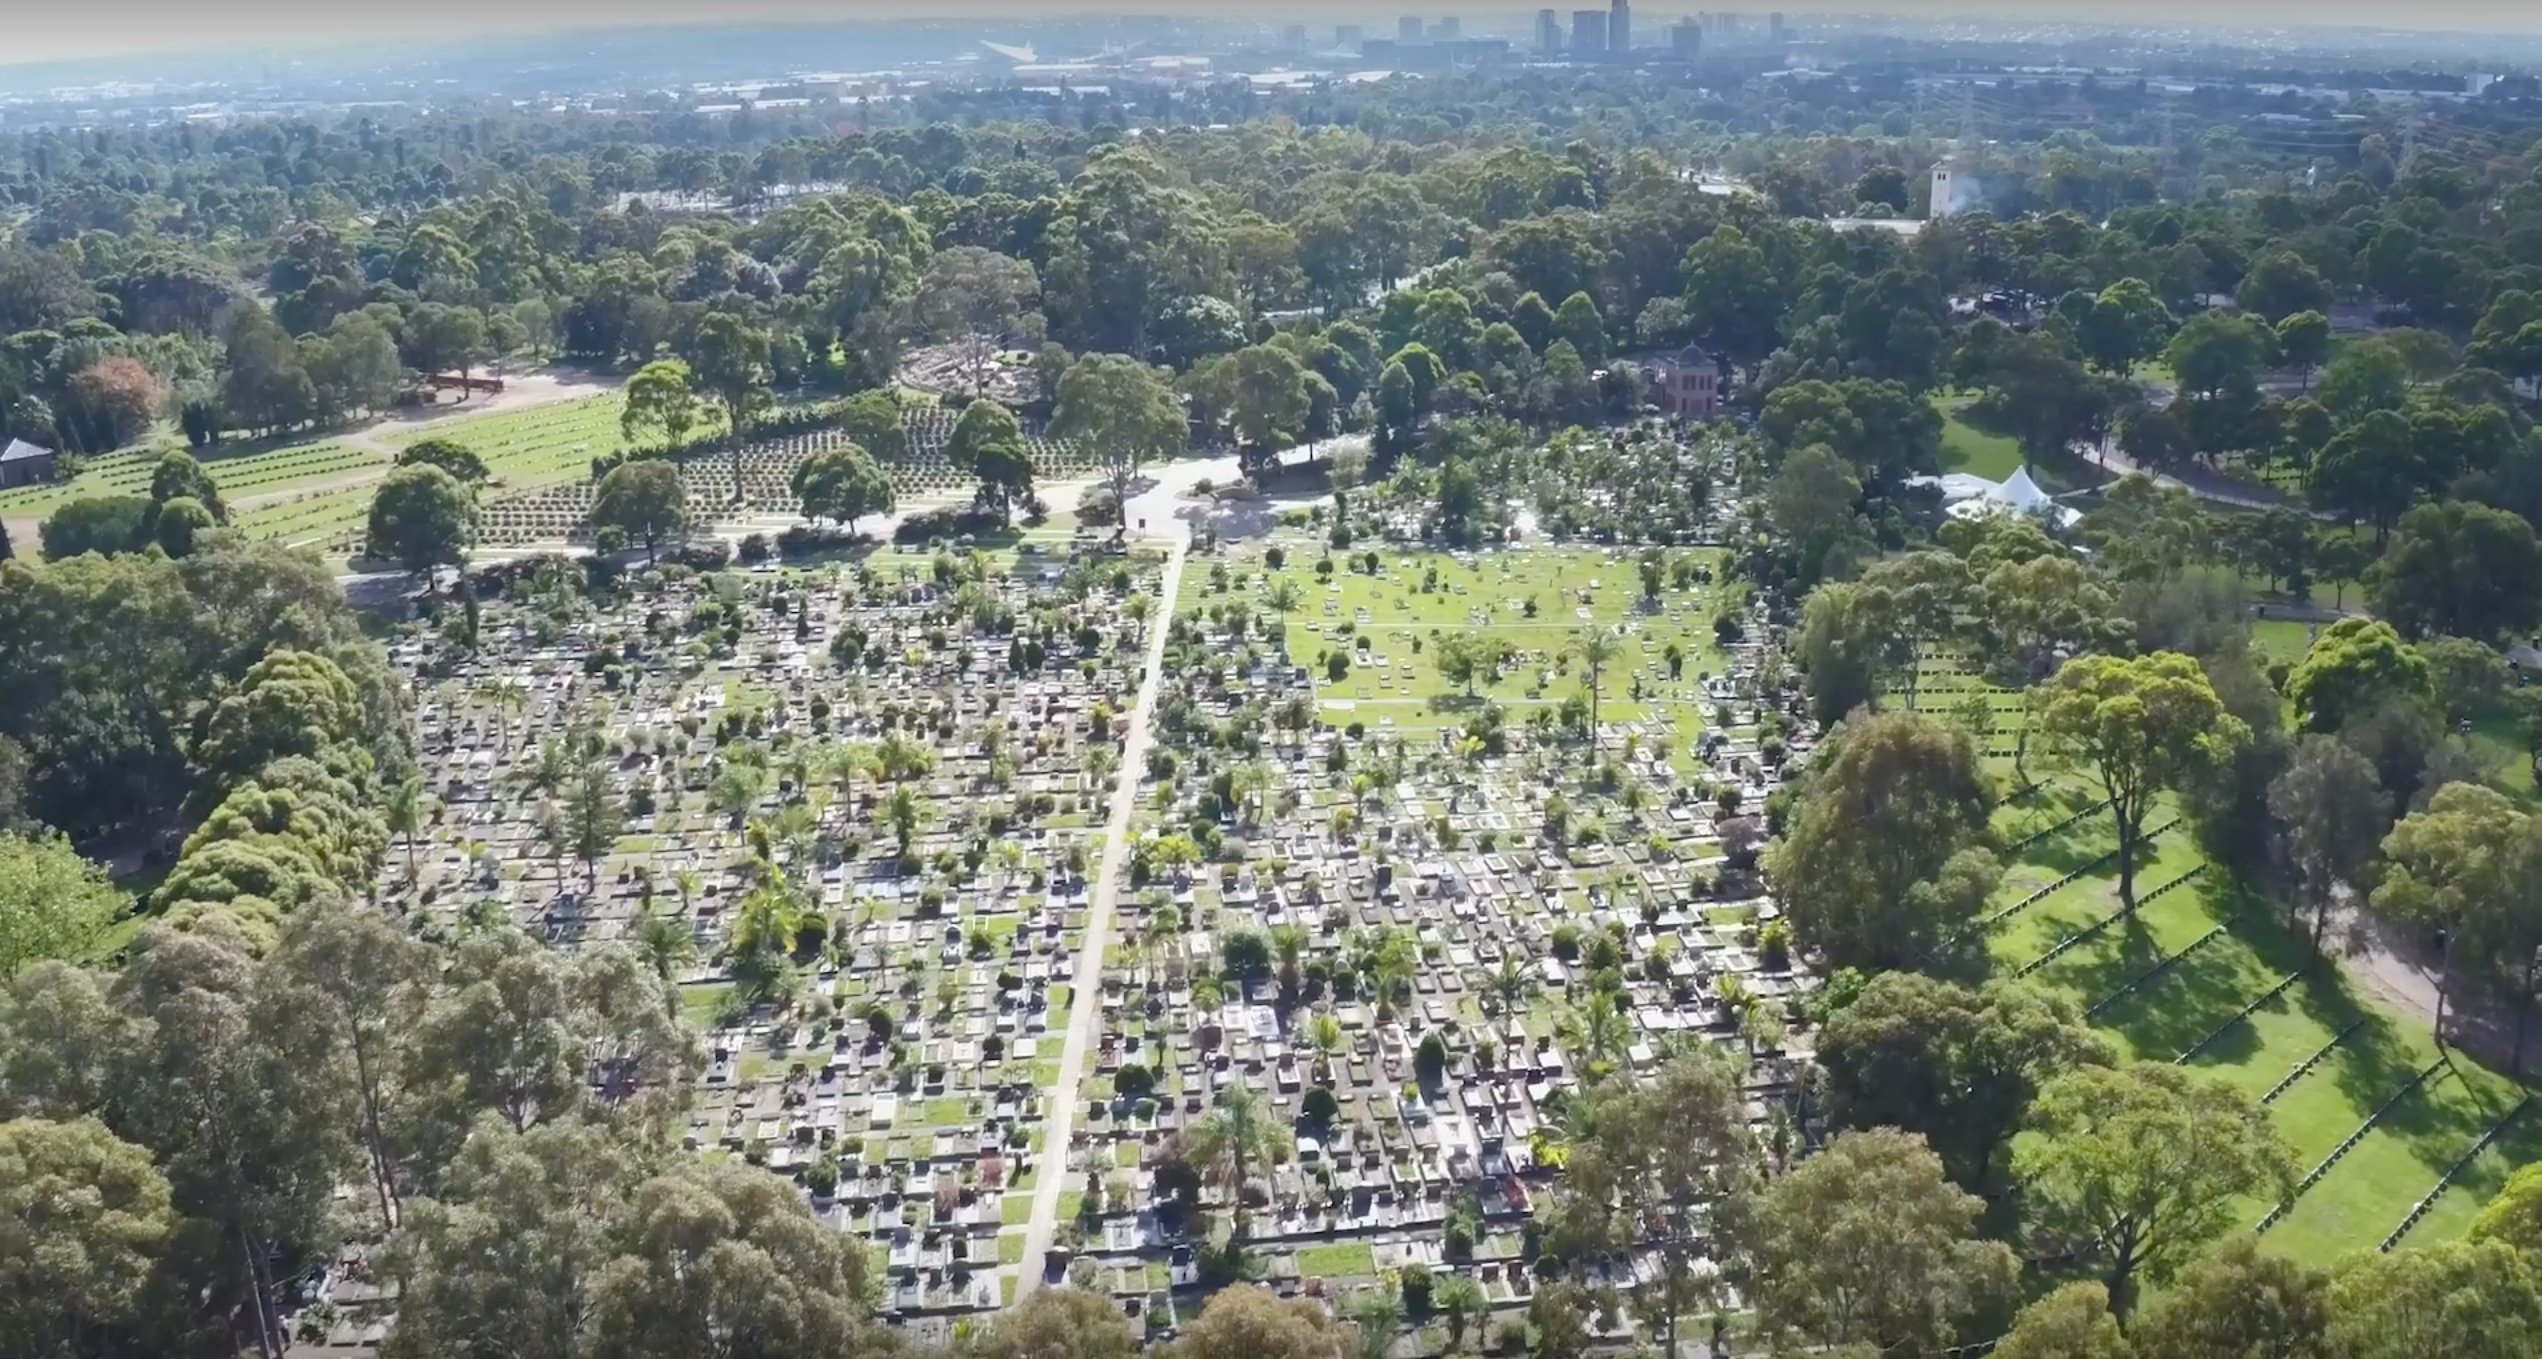 Aerial view of Rookwood General Cemetery